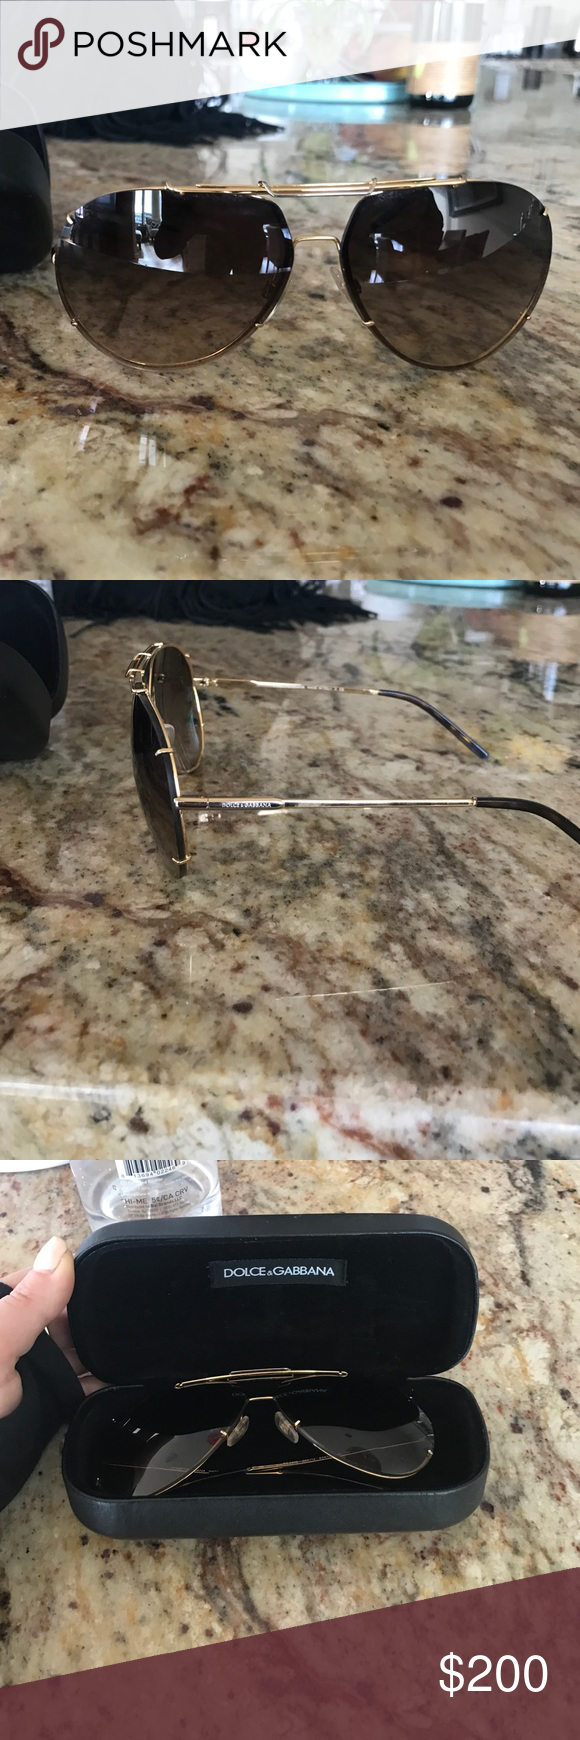 Dolce and gabanna sunglasses Dolce and Gabbana gold/Havana brown sunglasses. Lens size is 63mm. Worn once, good condition with case Dolce & Gabbana Accessories Glasses